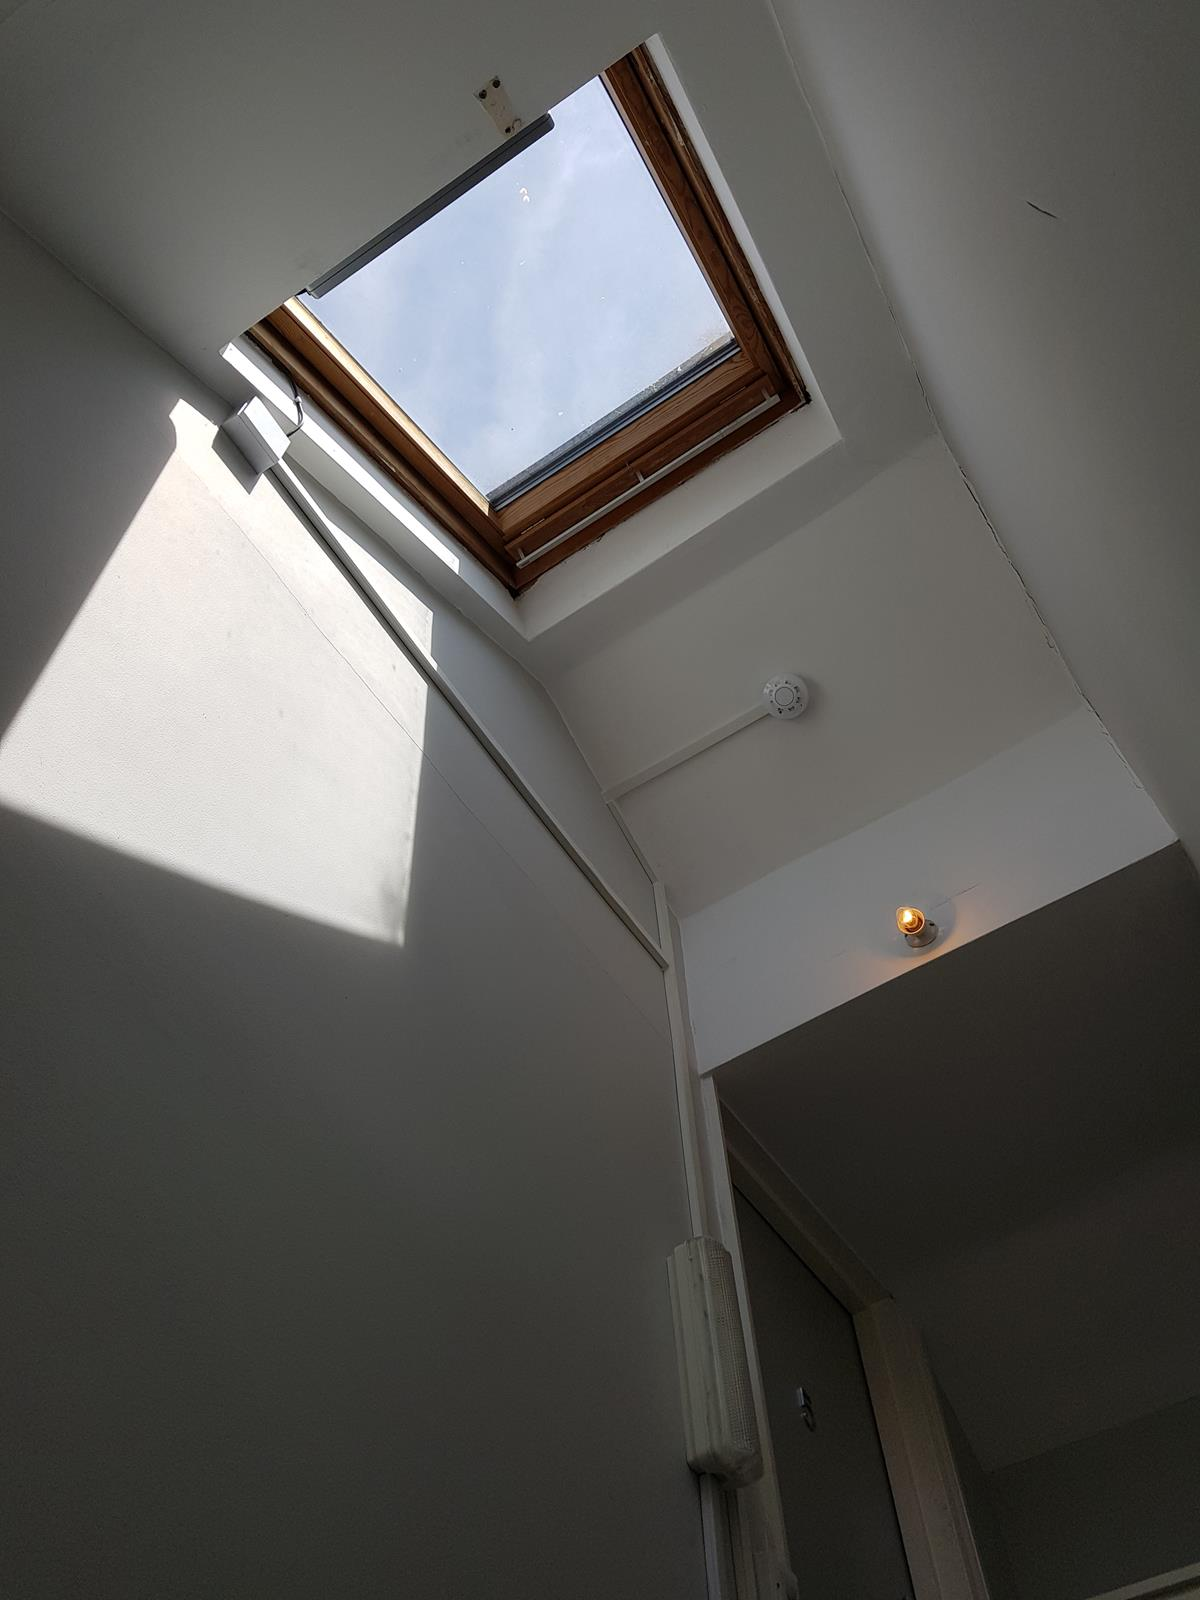 Kato 350 on Velux Window for Smoke Ventilation